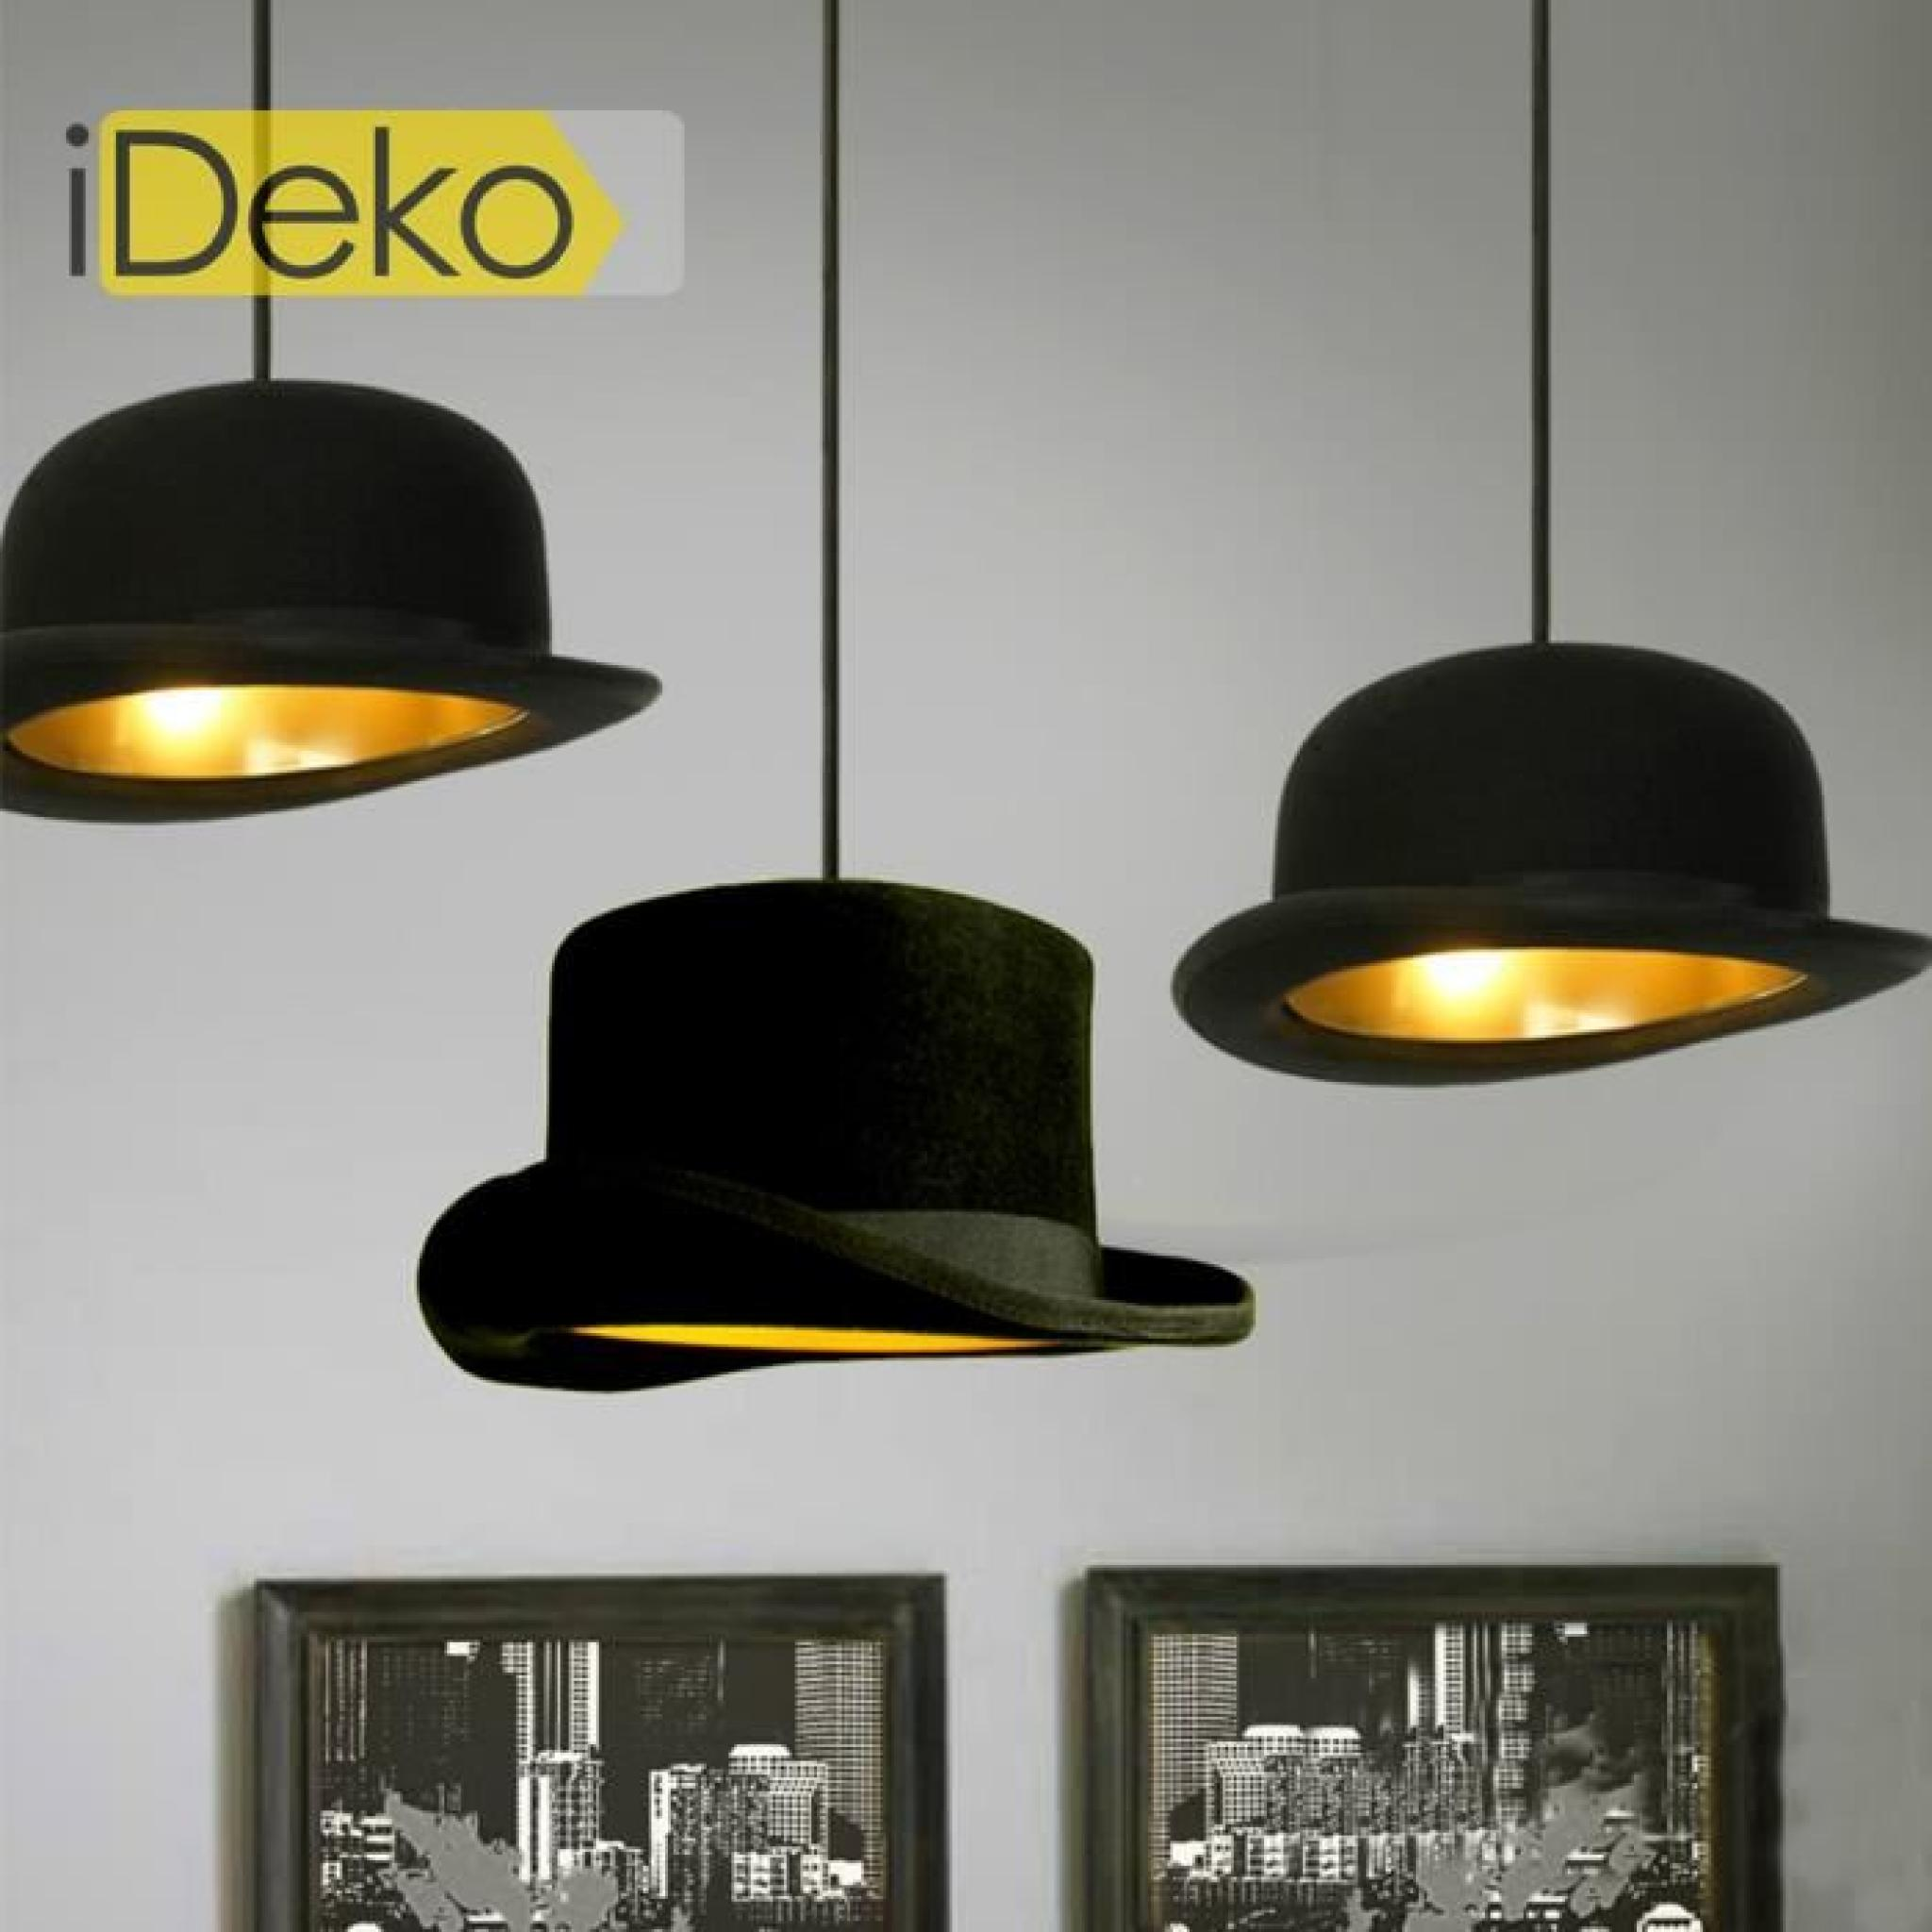 Ideko lampe de salon chamber art design unique chapeau lampe plafonnier susp - Lampe suspension design pas cher ...